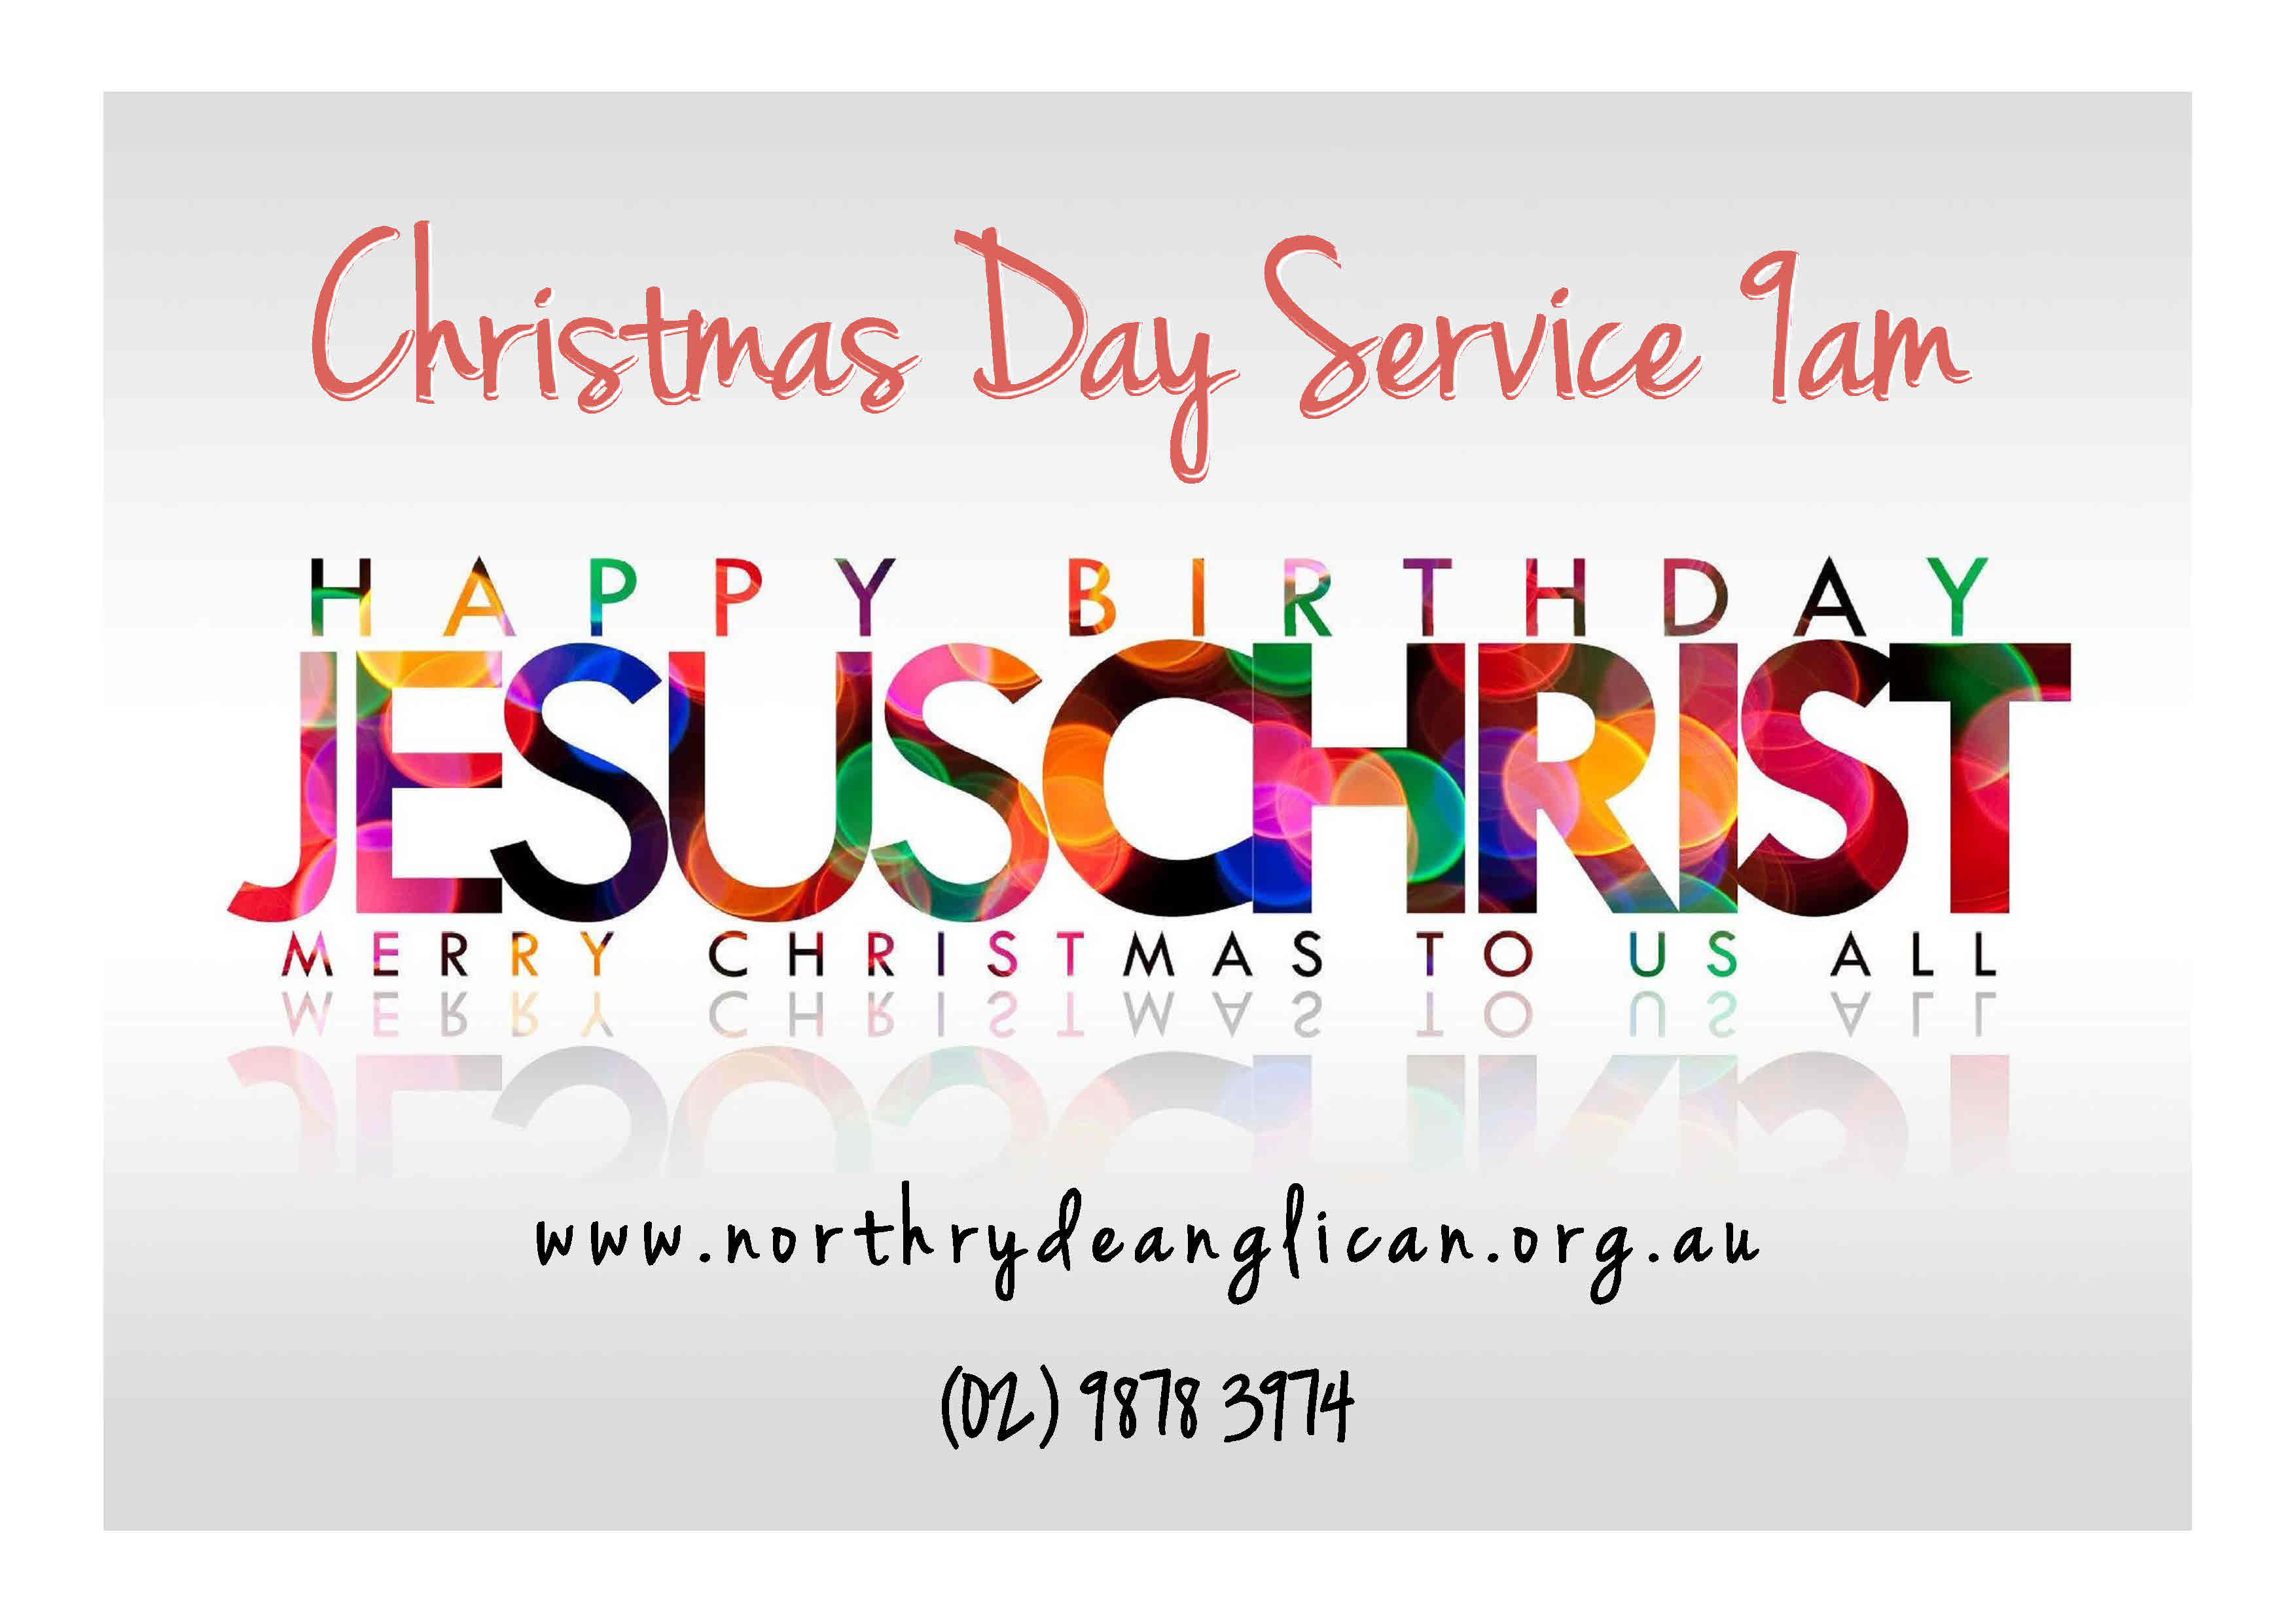 <p>Join us for a fun filled celebration of Jesus for all ages! Our service commences promptly at 9:00am and concludes at 9:45am with a morning tea celebration in our playground.</p>